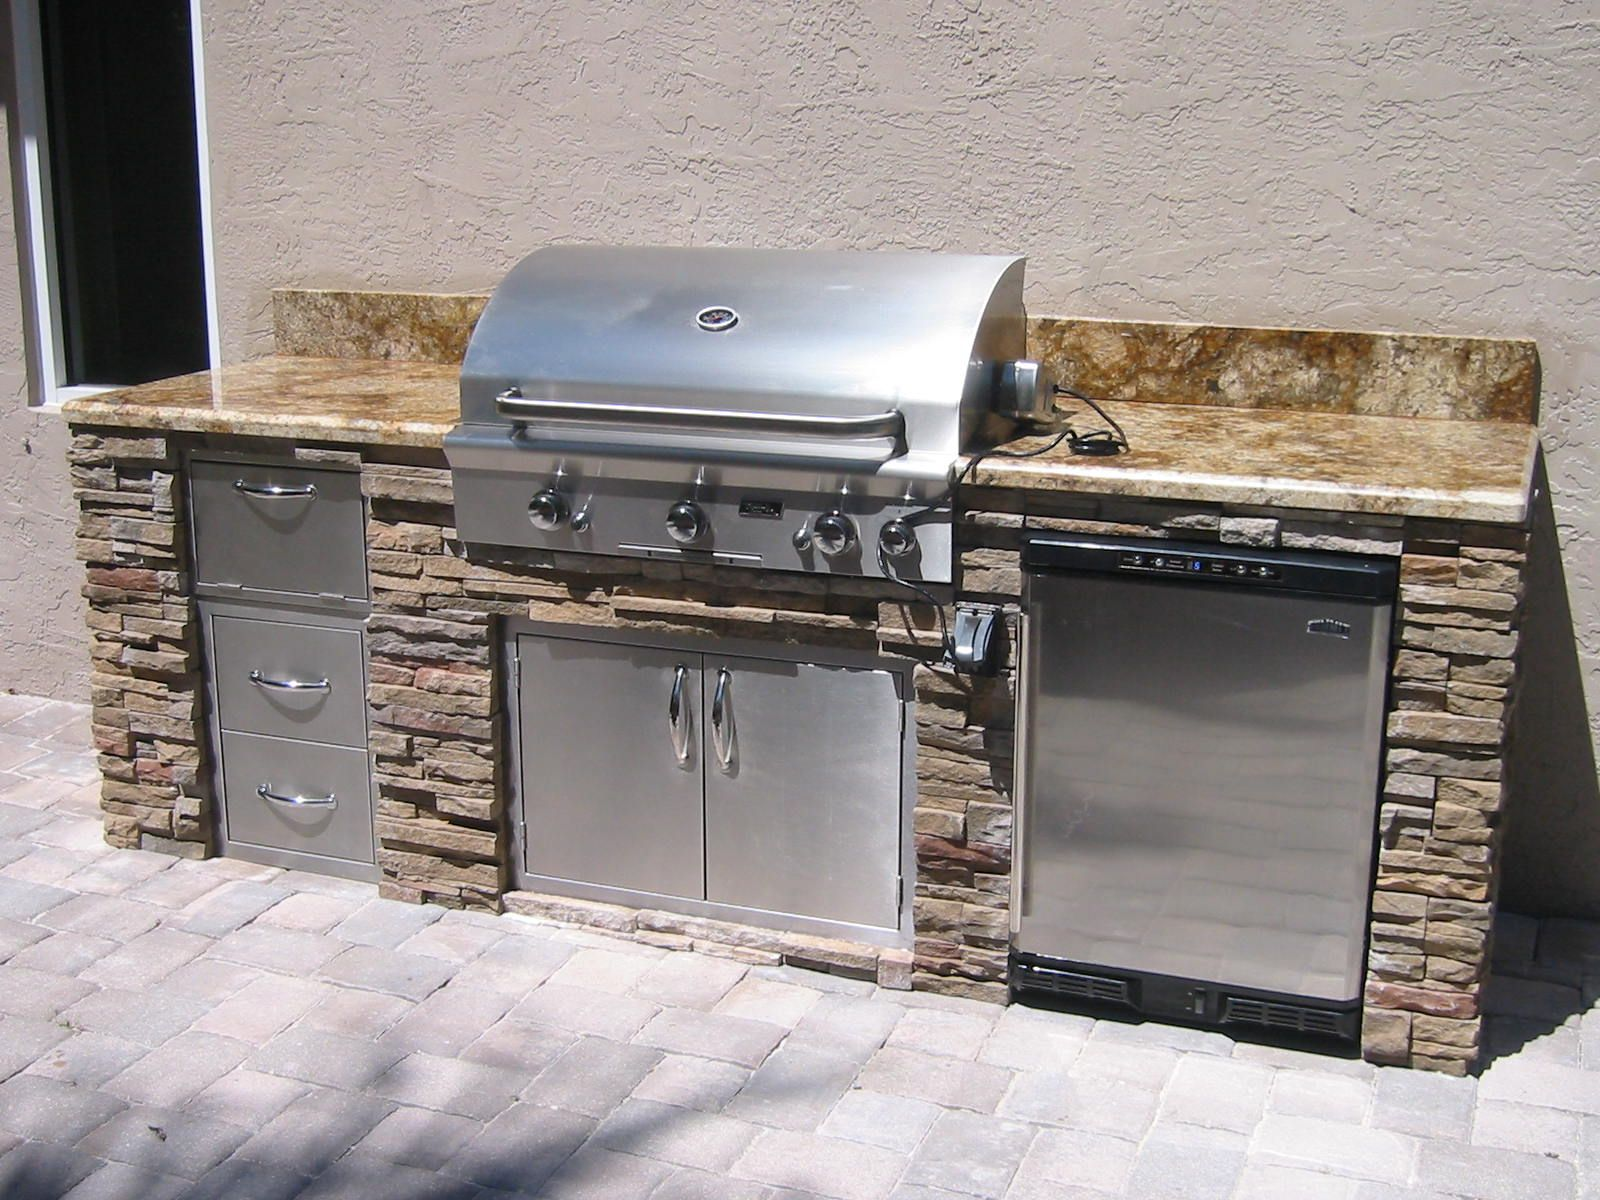 This builtin grill would match our existing sunroom